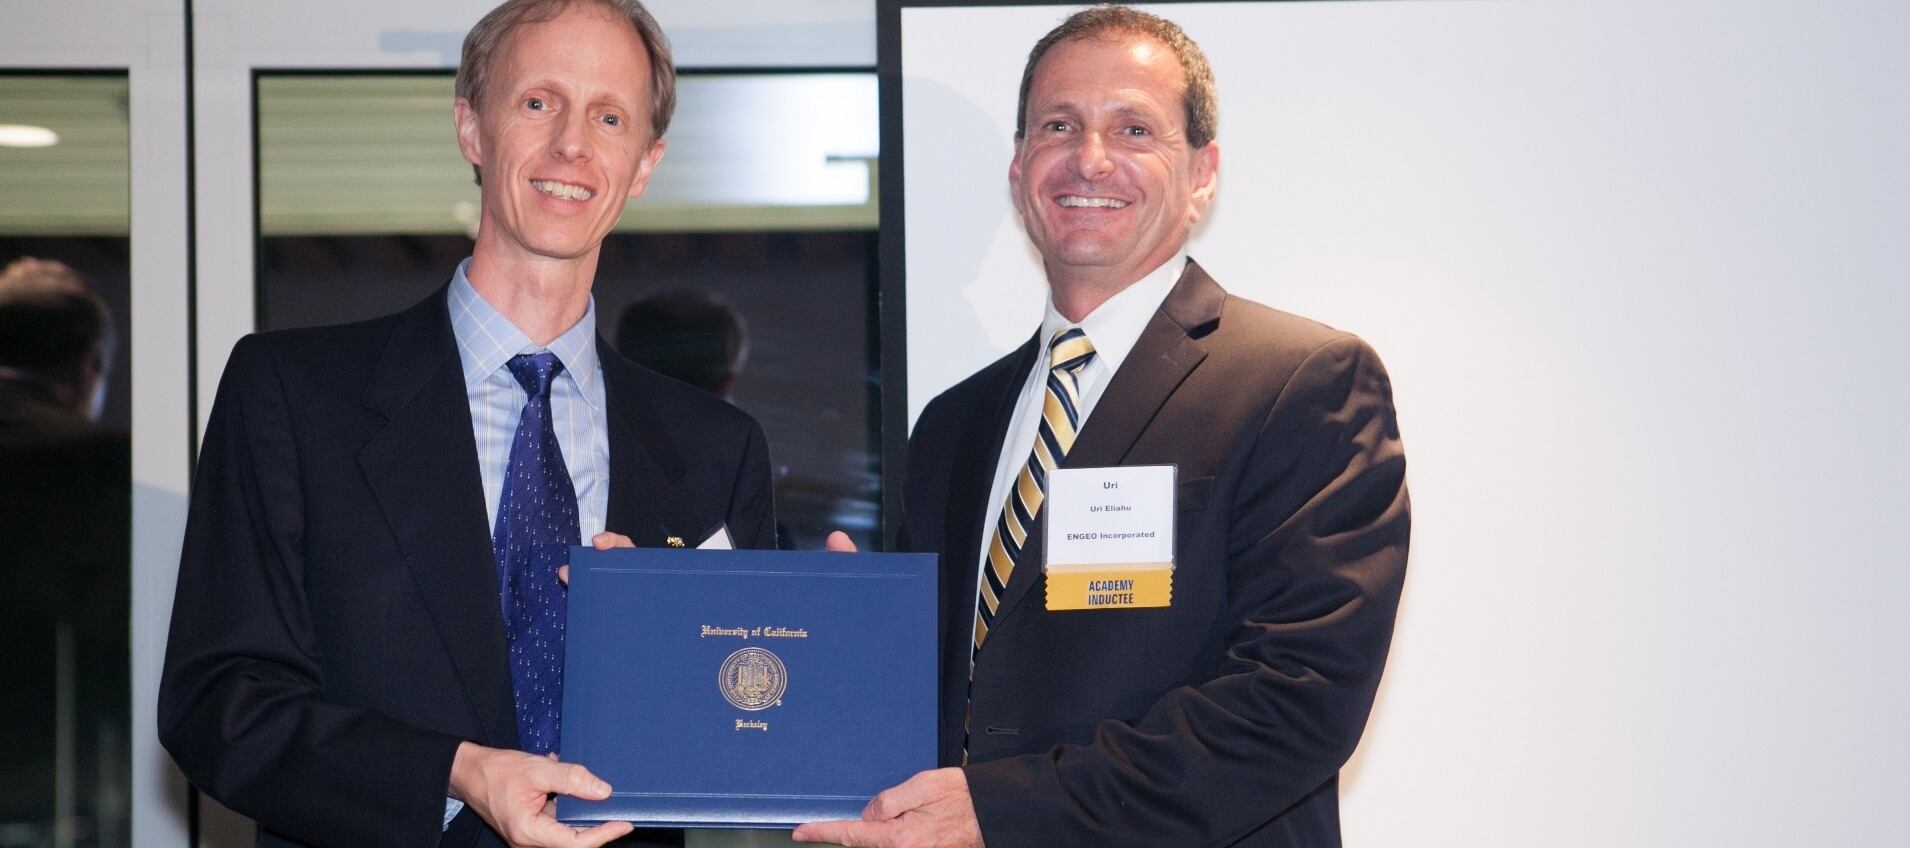 ENGEO President Uri Eliahu Is Inducted To Academy Of Distinguished Alumni At University Of California, Berkeley, Civil And Environmental Engineering Department